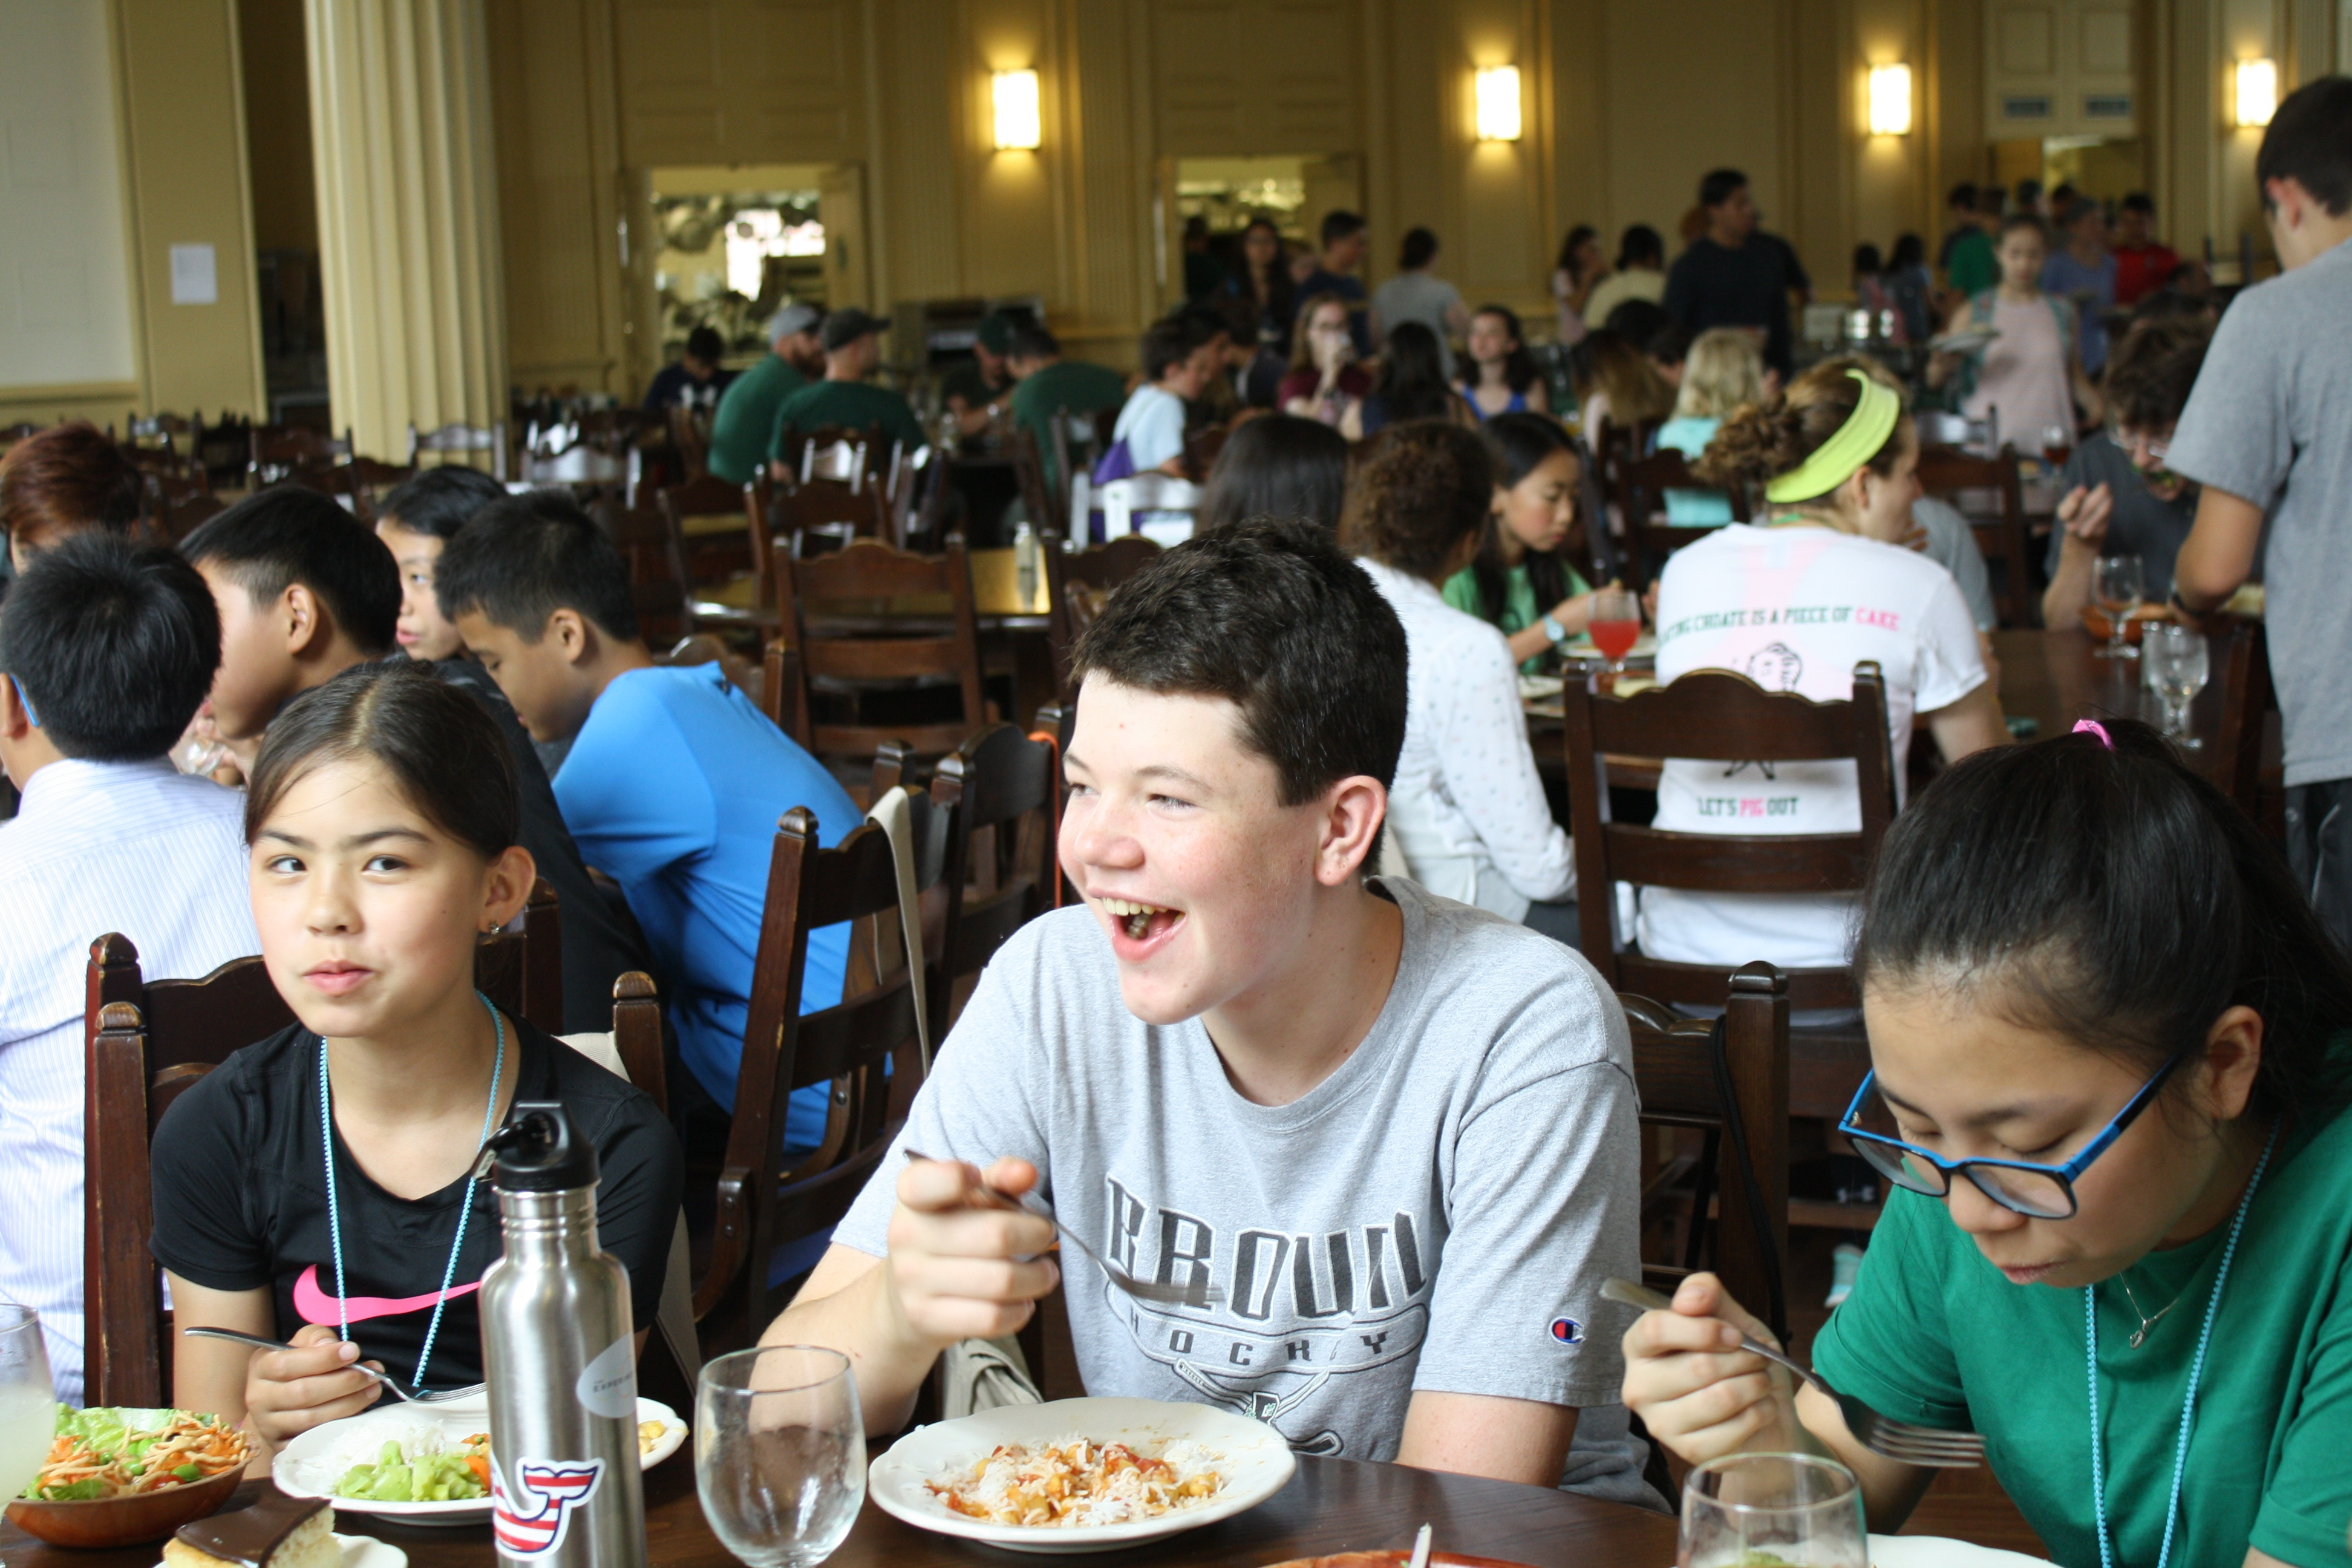 Students laughing over lunch in the dining hall.